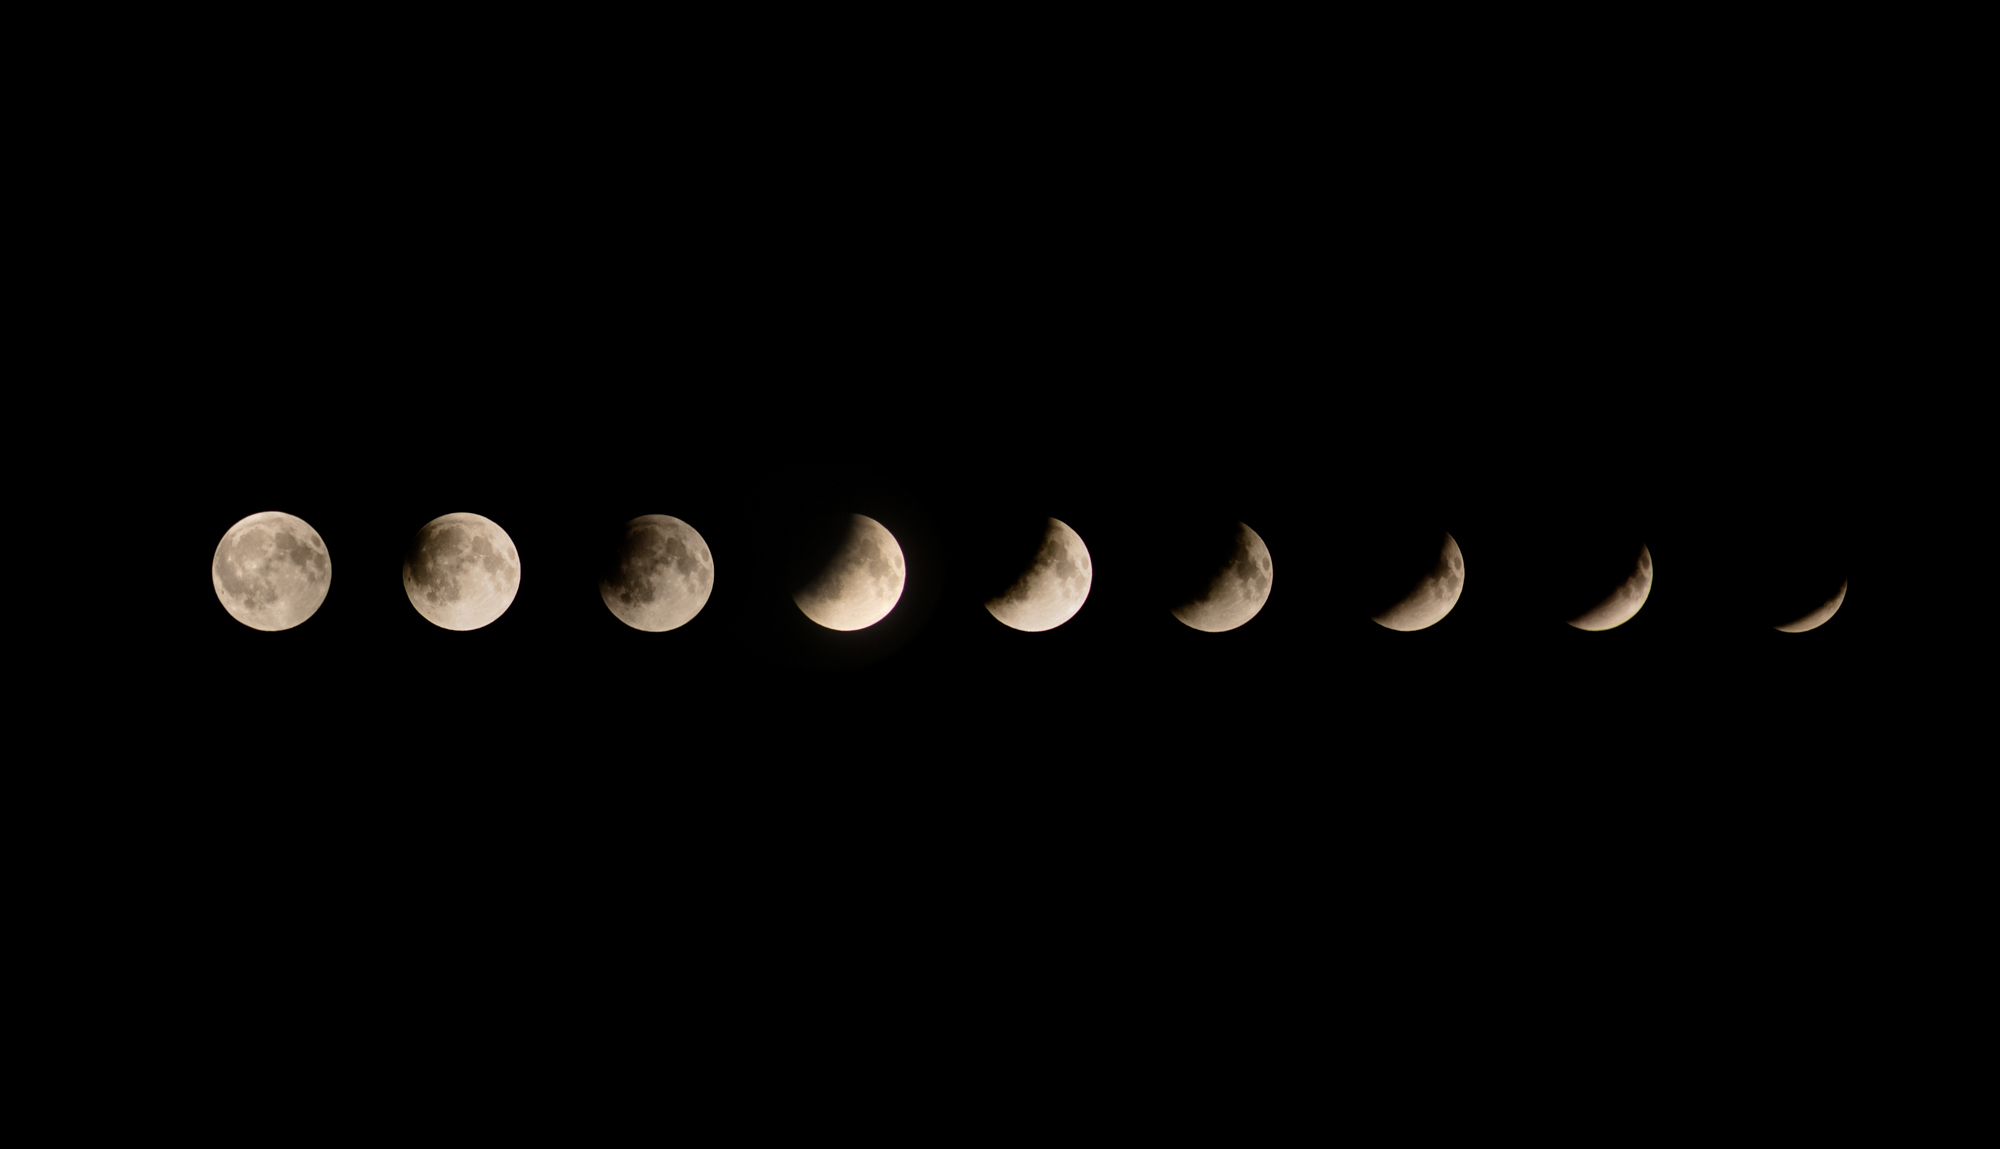 4-15-14 Lunar Eclipse phase